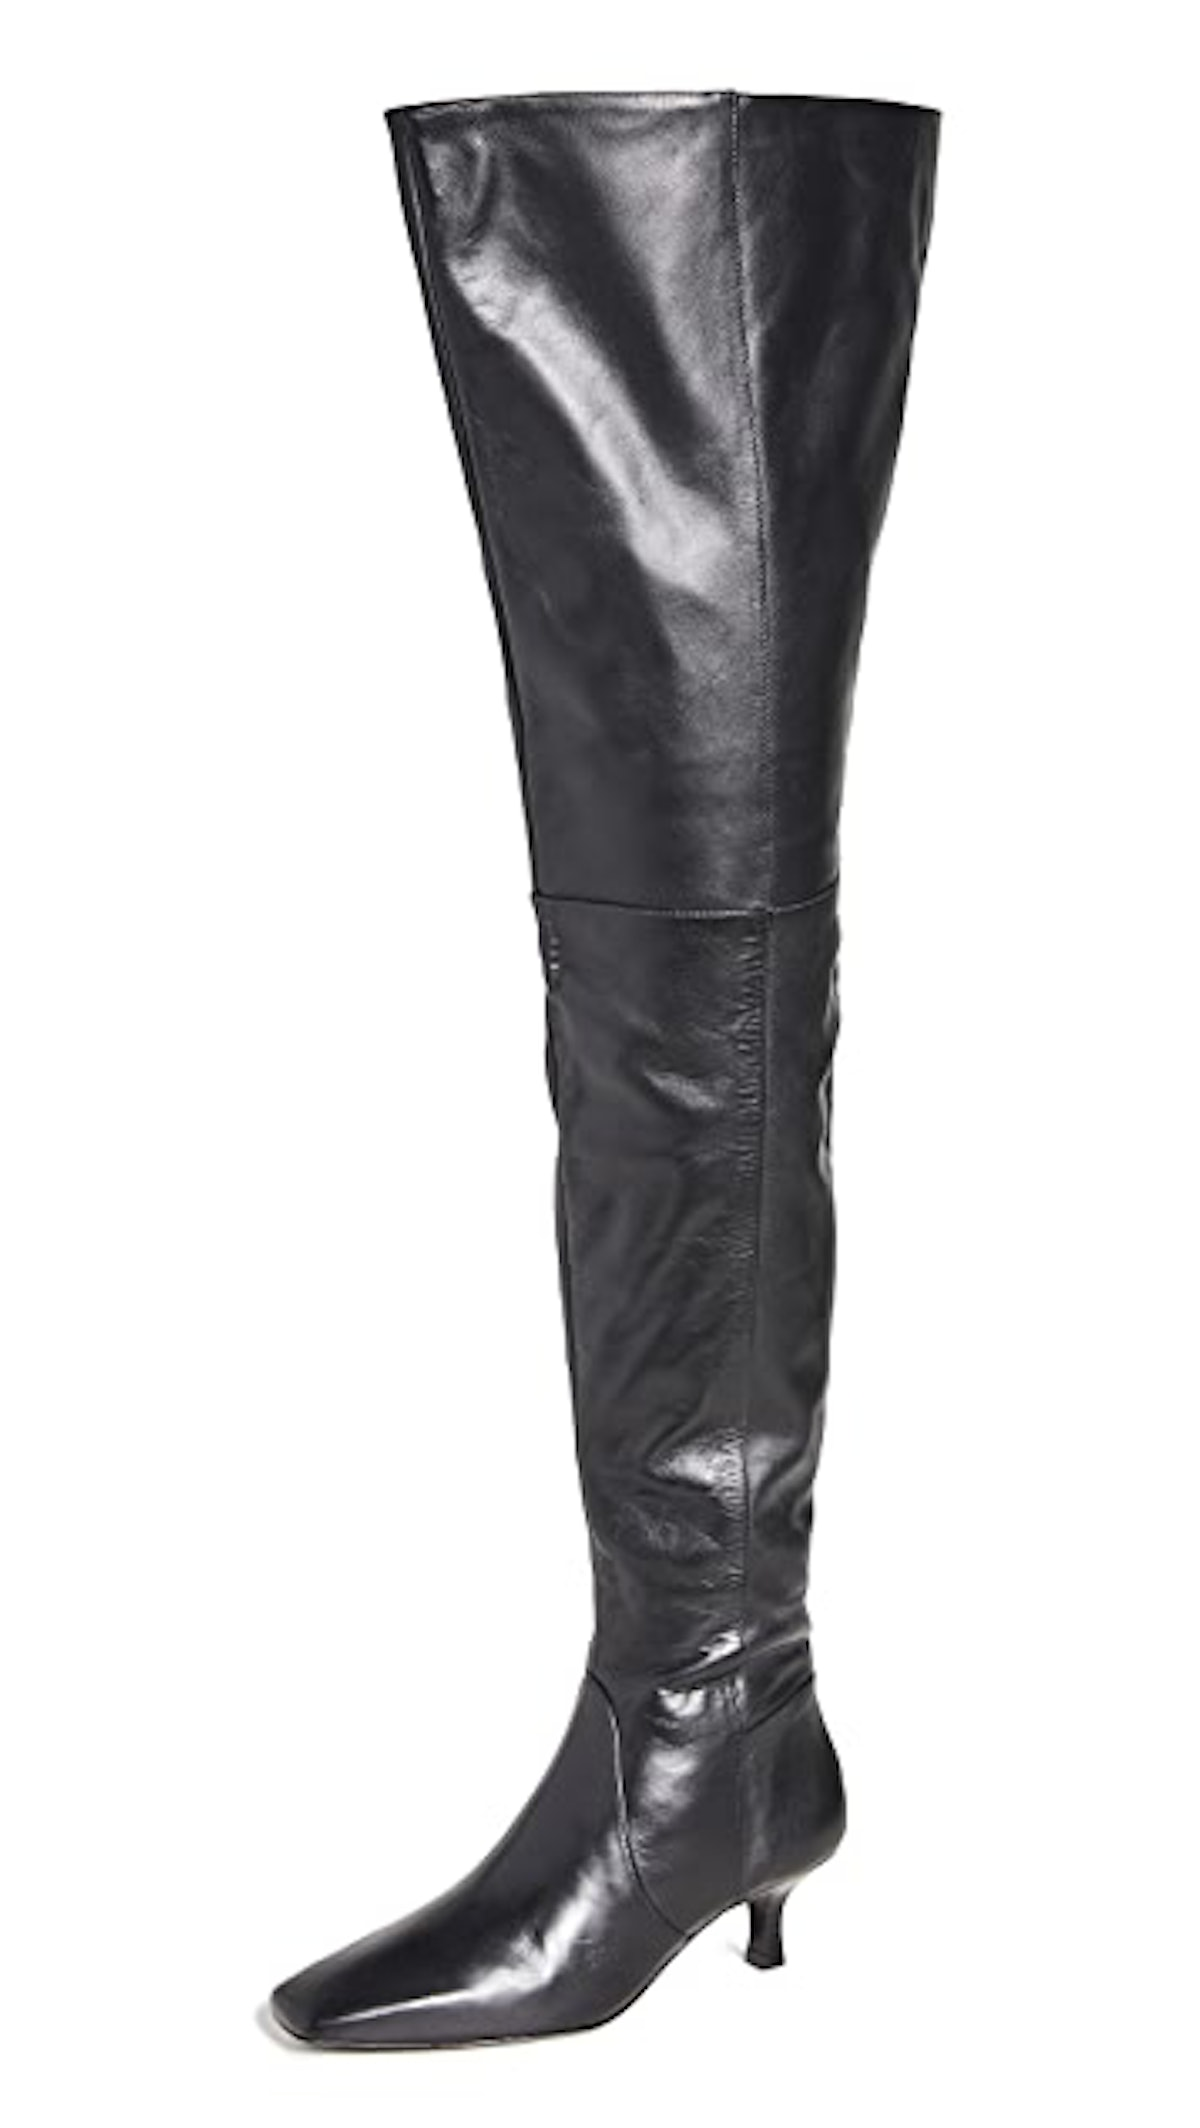 Serena Boots from Cult Gaia, available to shop on Shopbop.